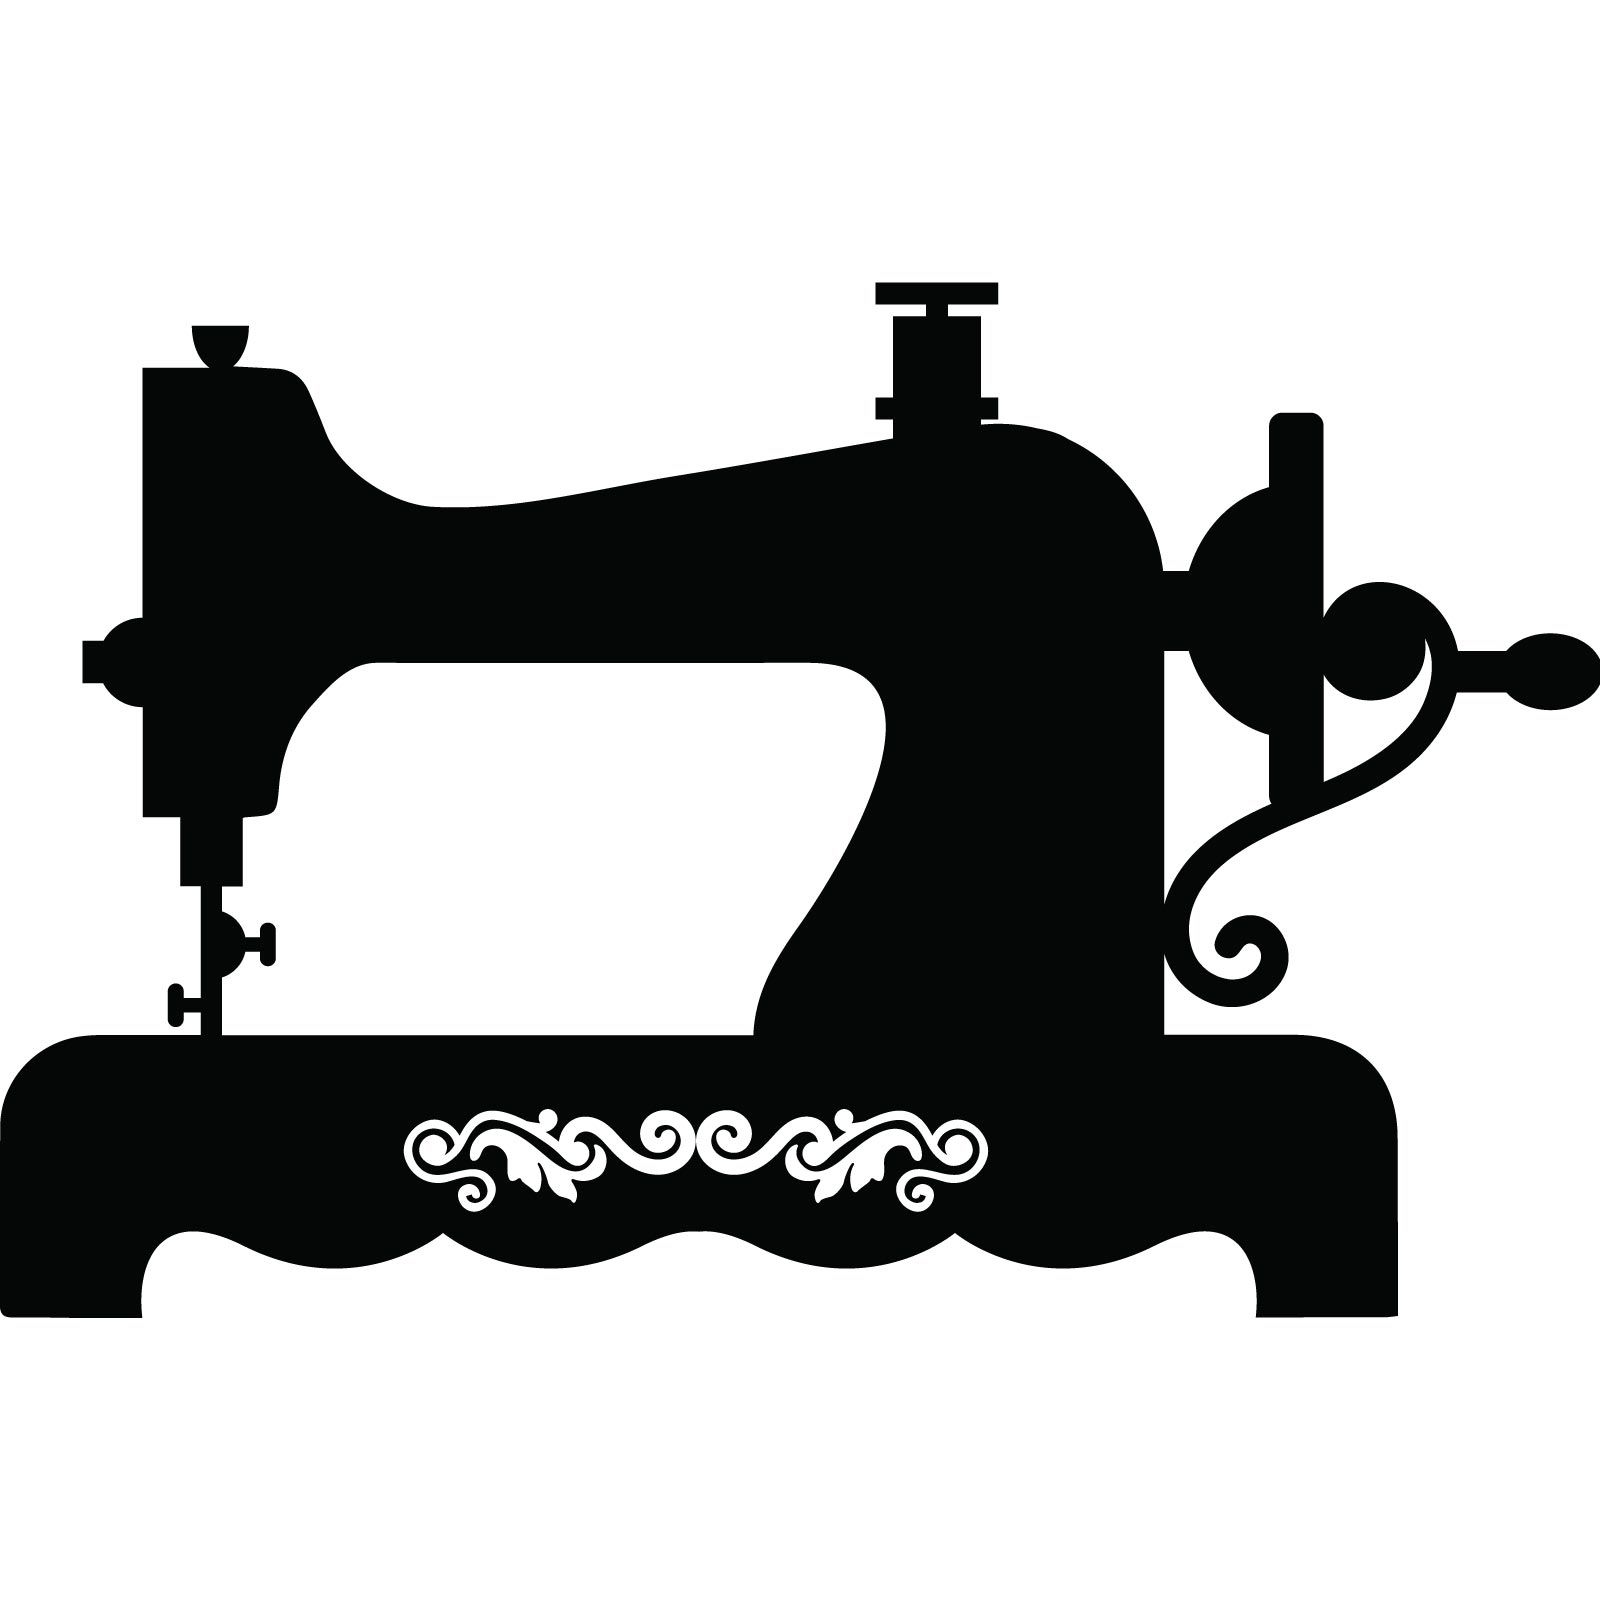 Image result for vintage sewing machine silhouette.